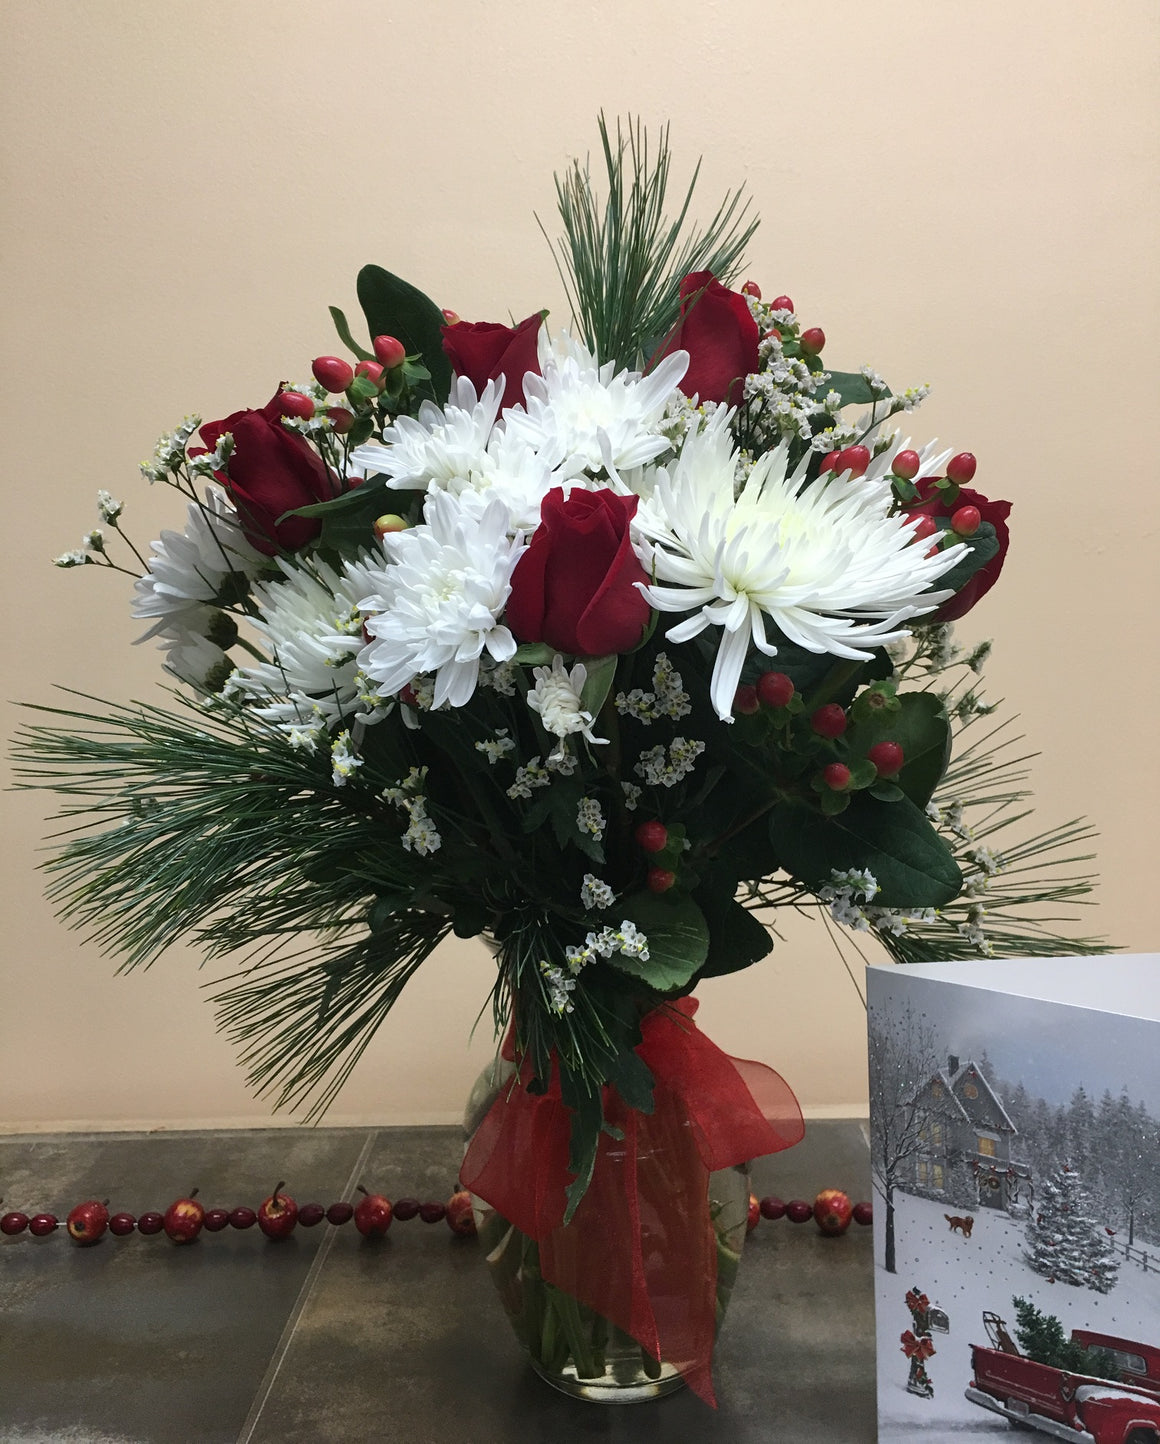 Holiday Celebration Bouquet with Vase - Shipping included!